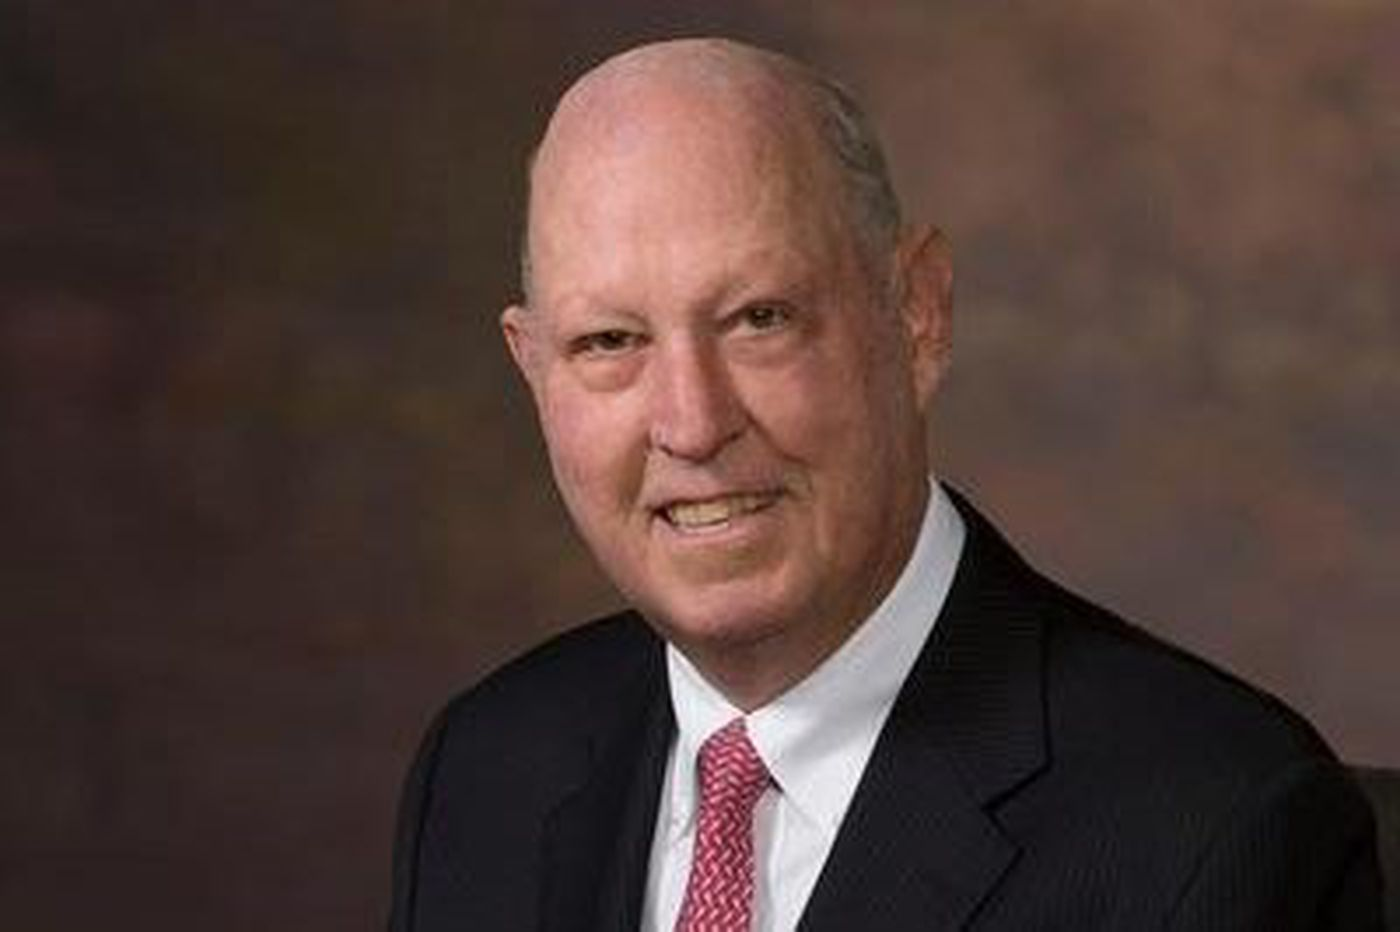 Joseph Anthony `Tony' Hayden, 74, real estate executive